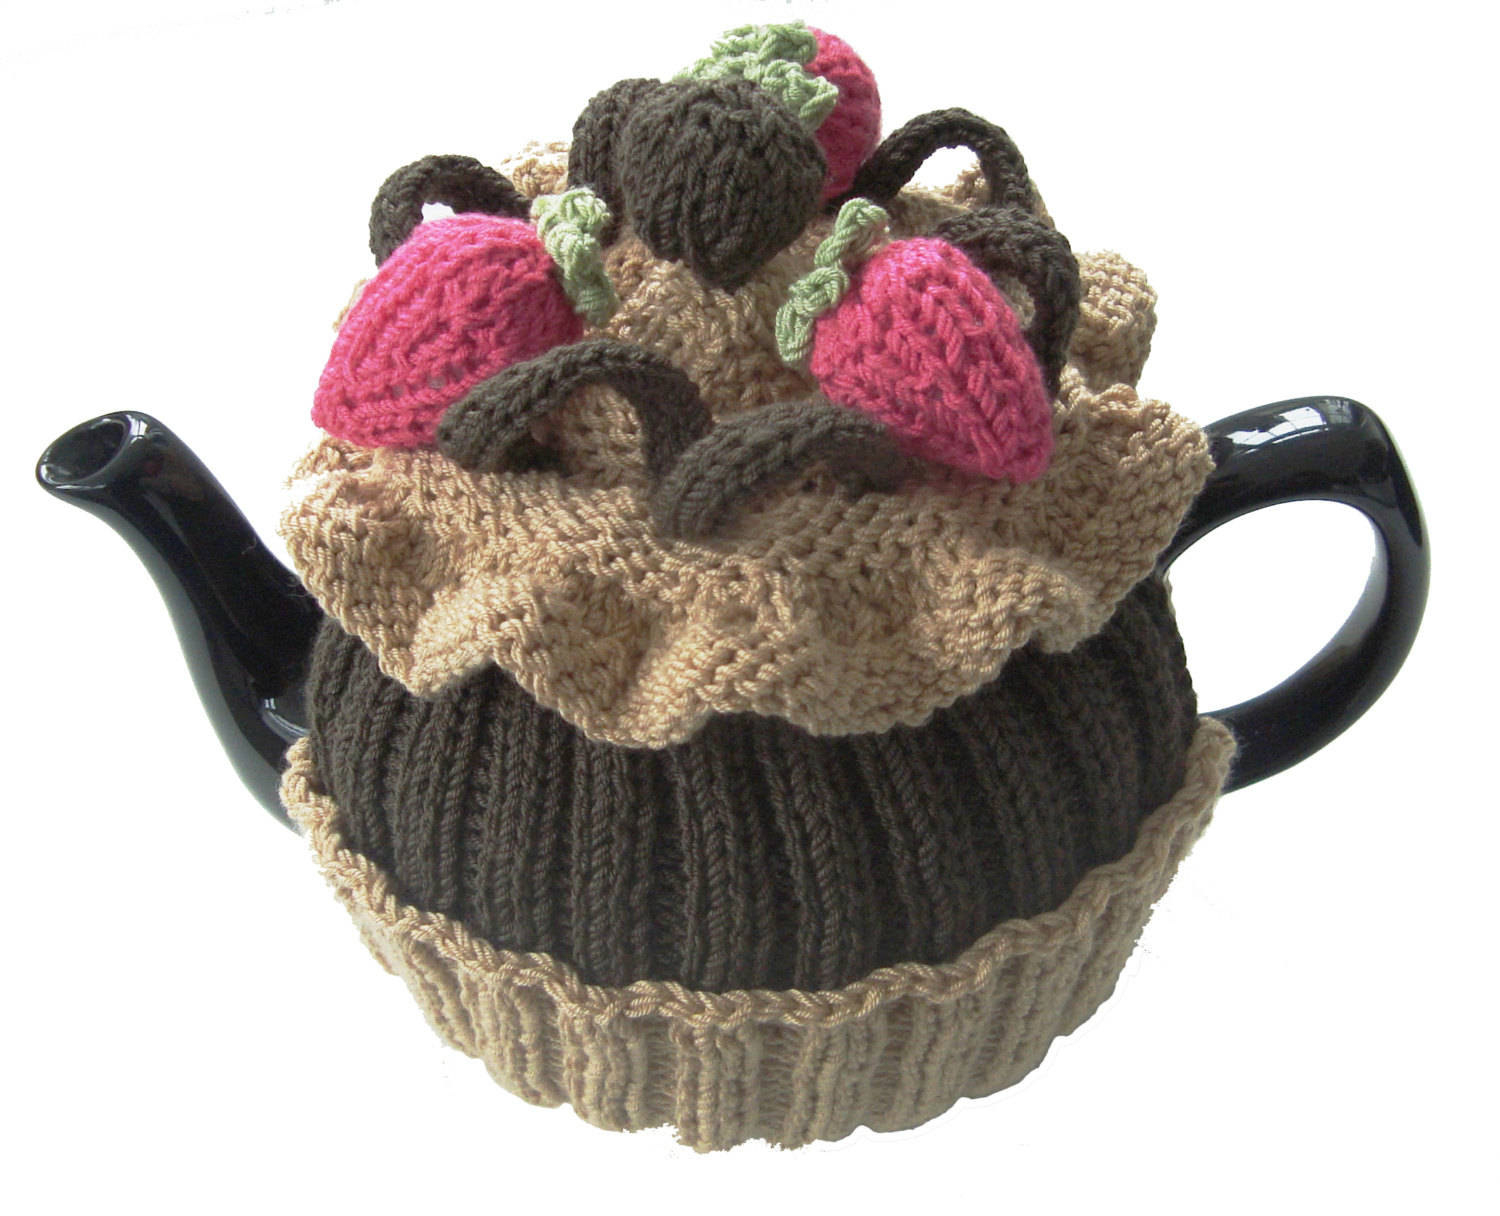 Tea Cosy Patterns To Knit Tea Cosy Knitting Pattern Chocolate Cup Cake Pdf Knitting Pattern